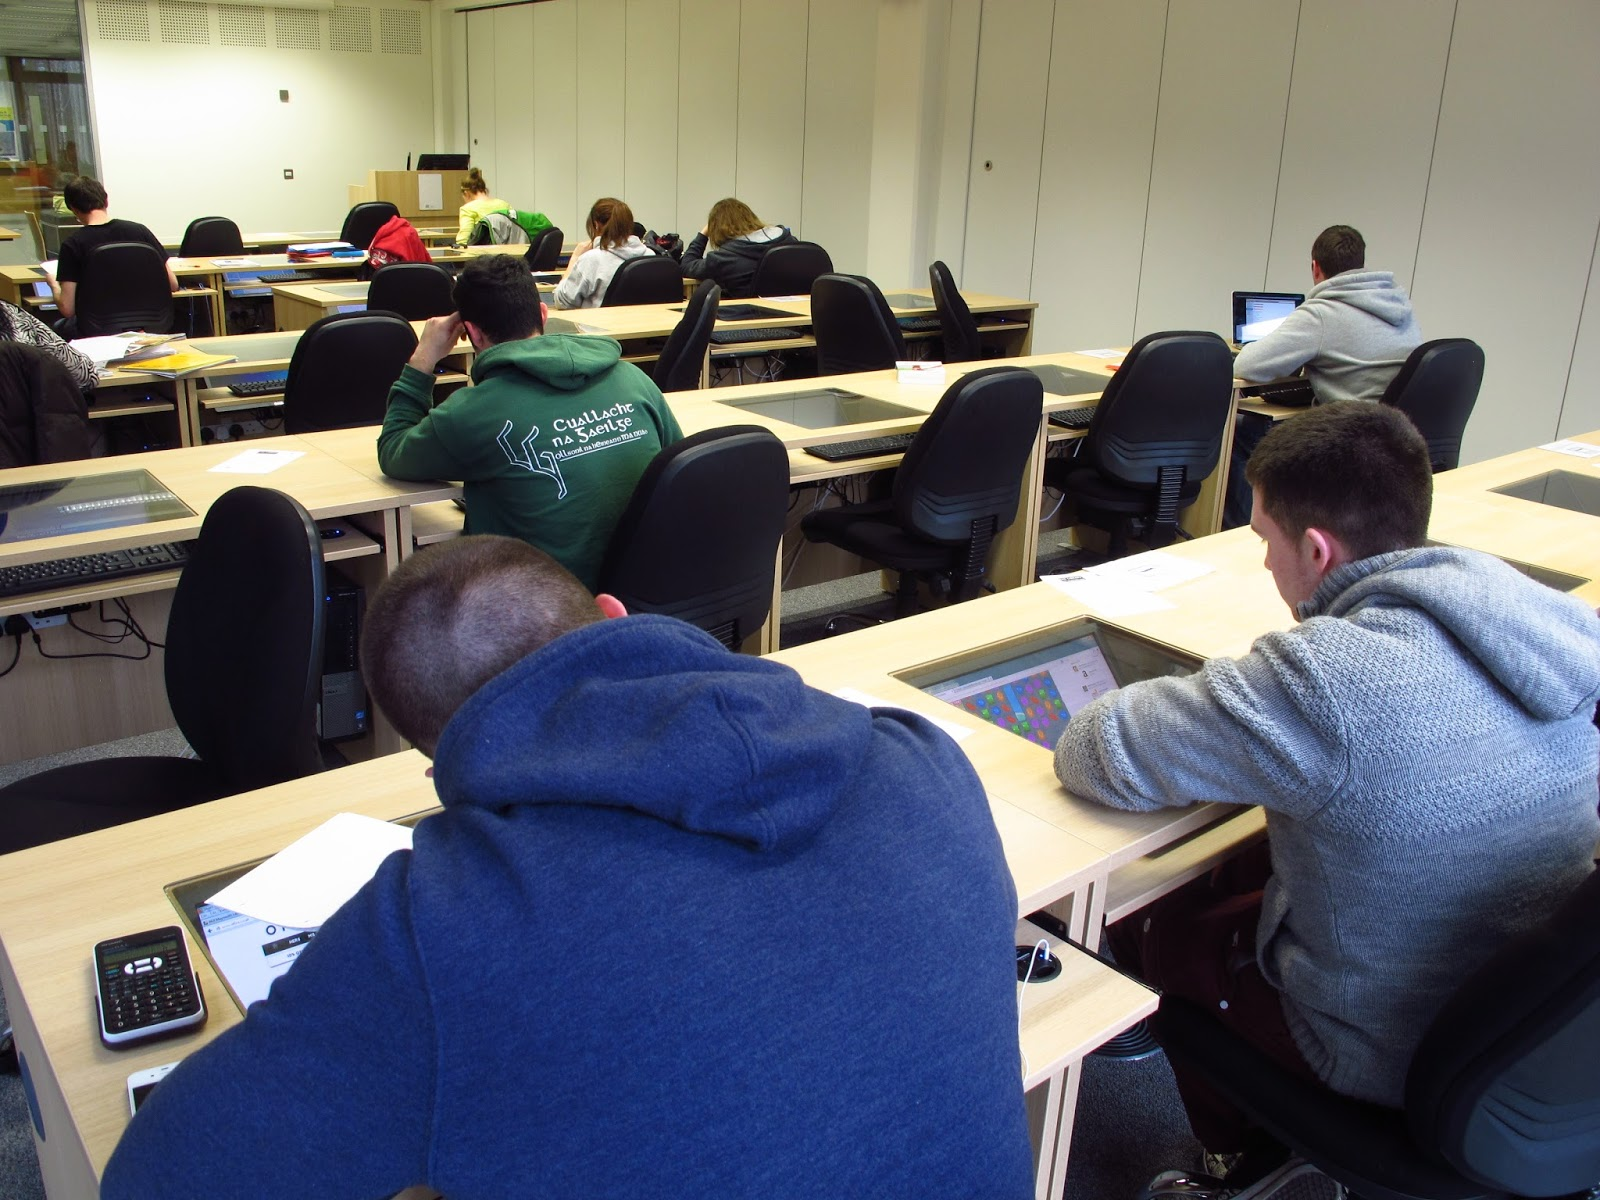 Maynooth Library Study Rooms